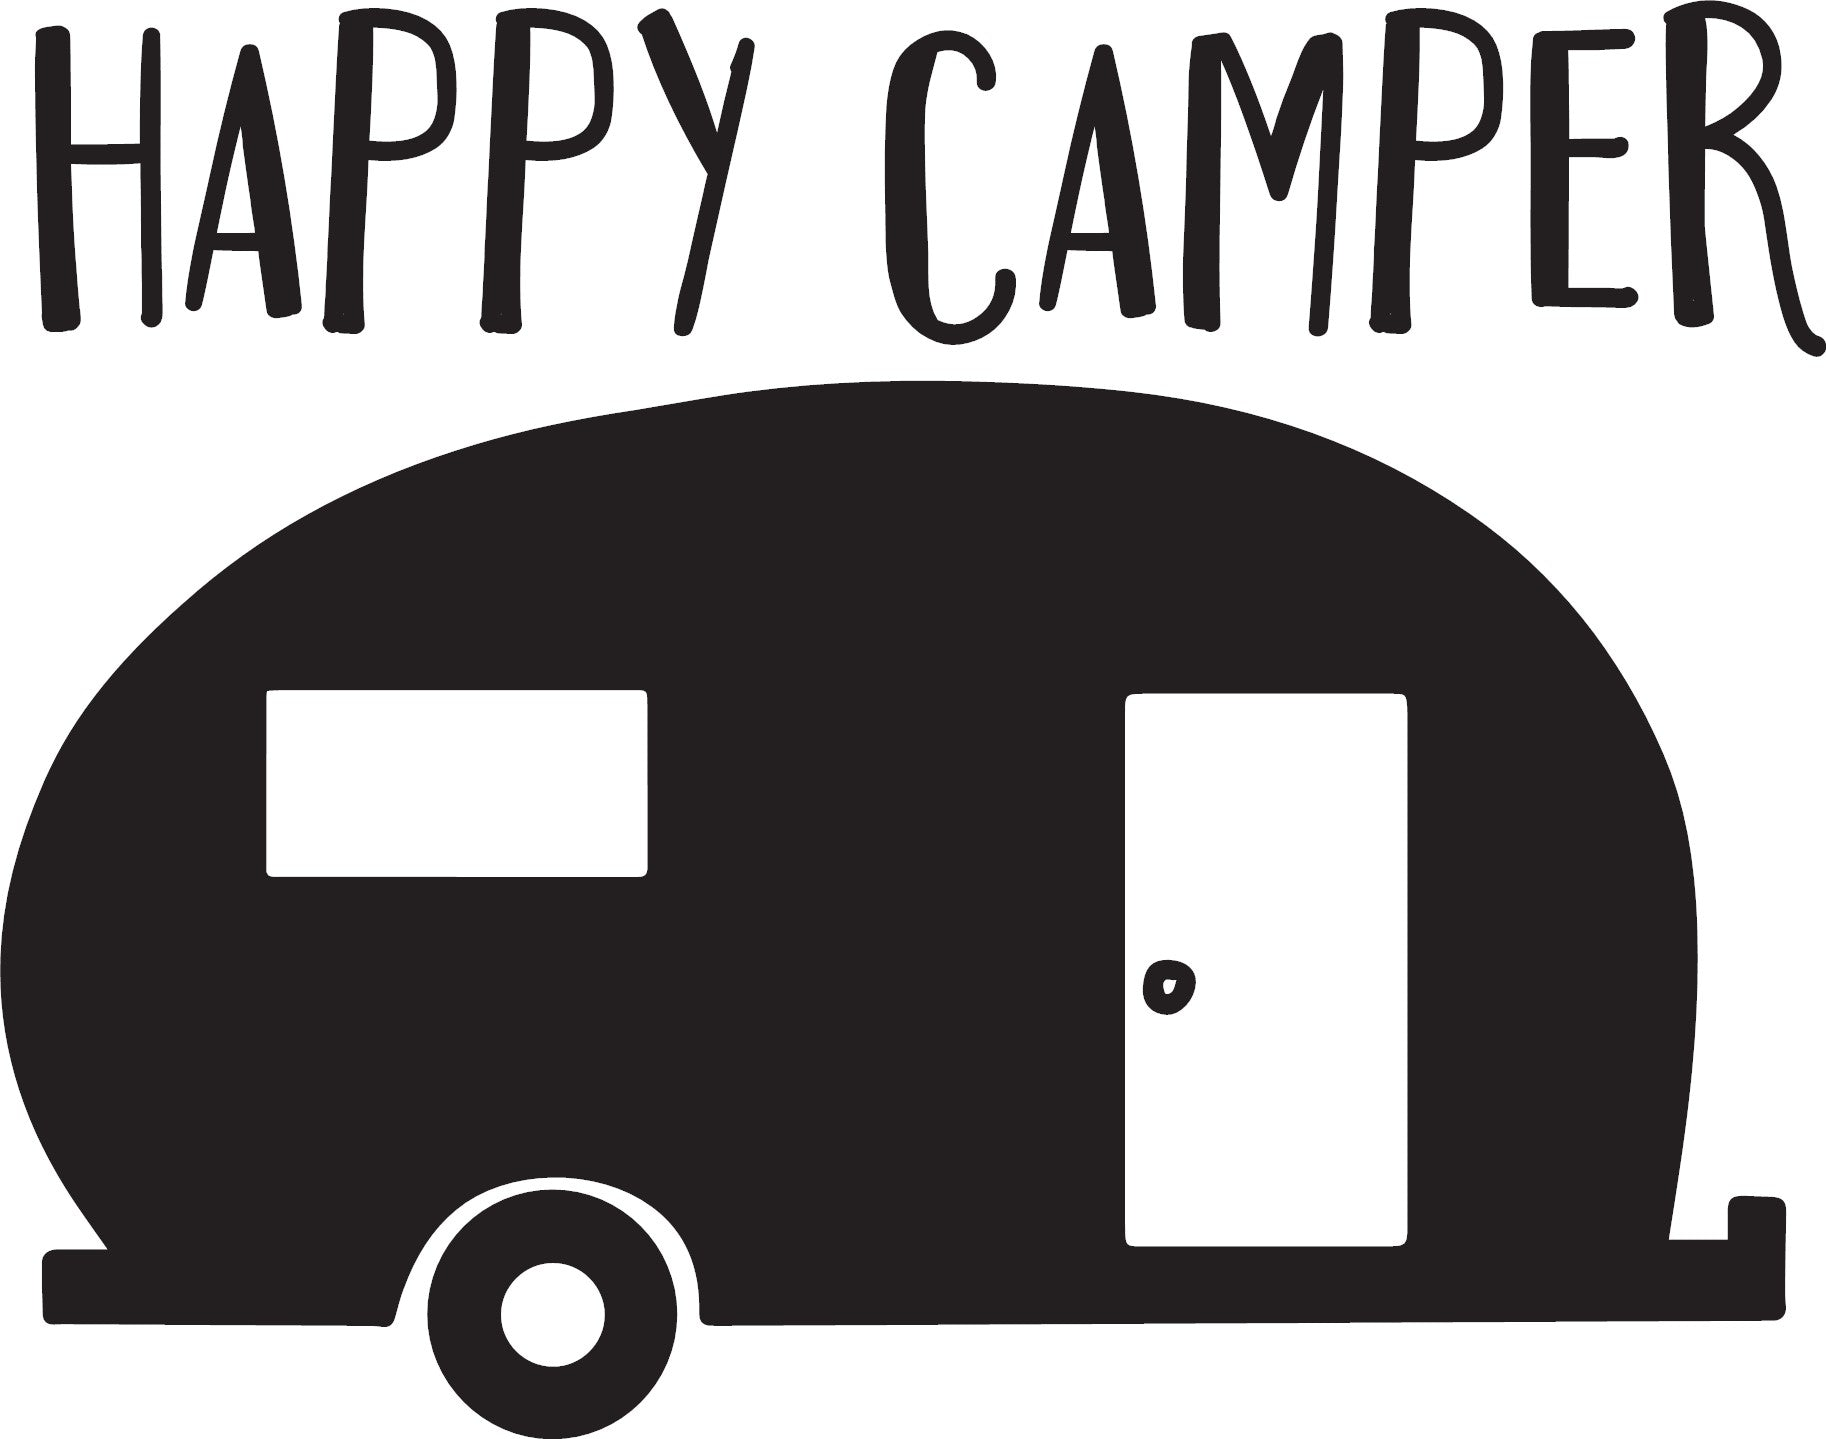 Happy Camper Women's